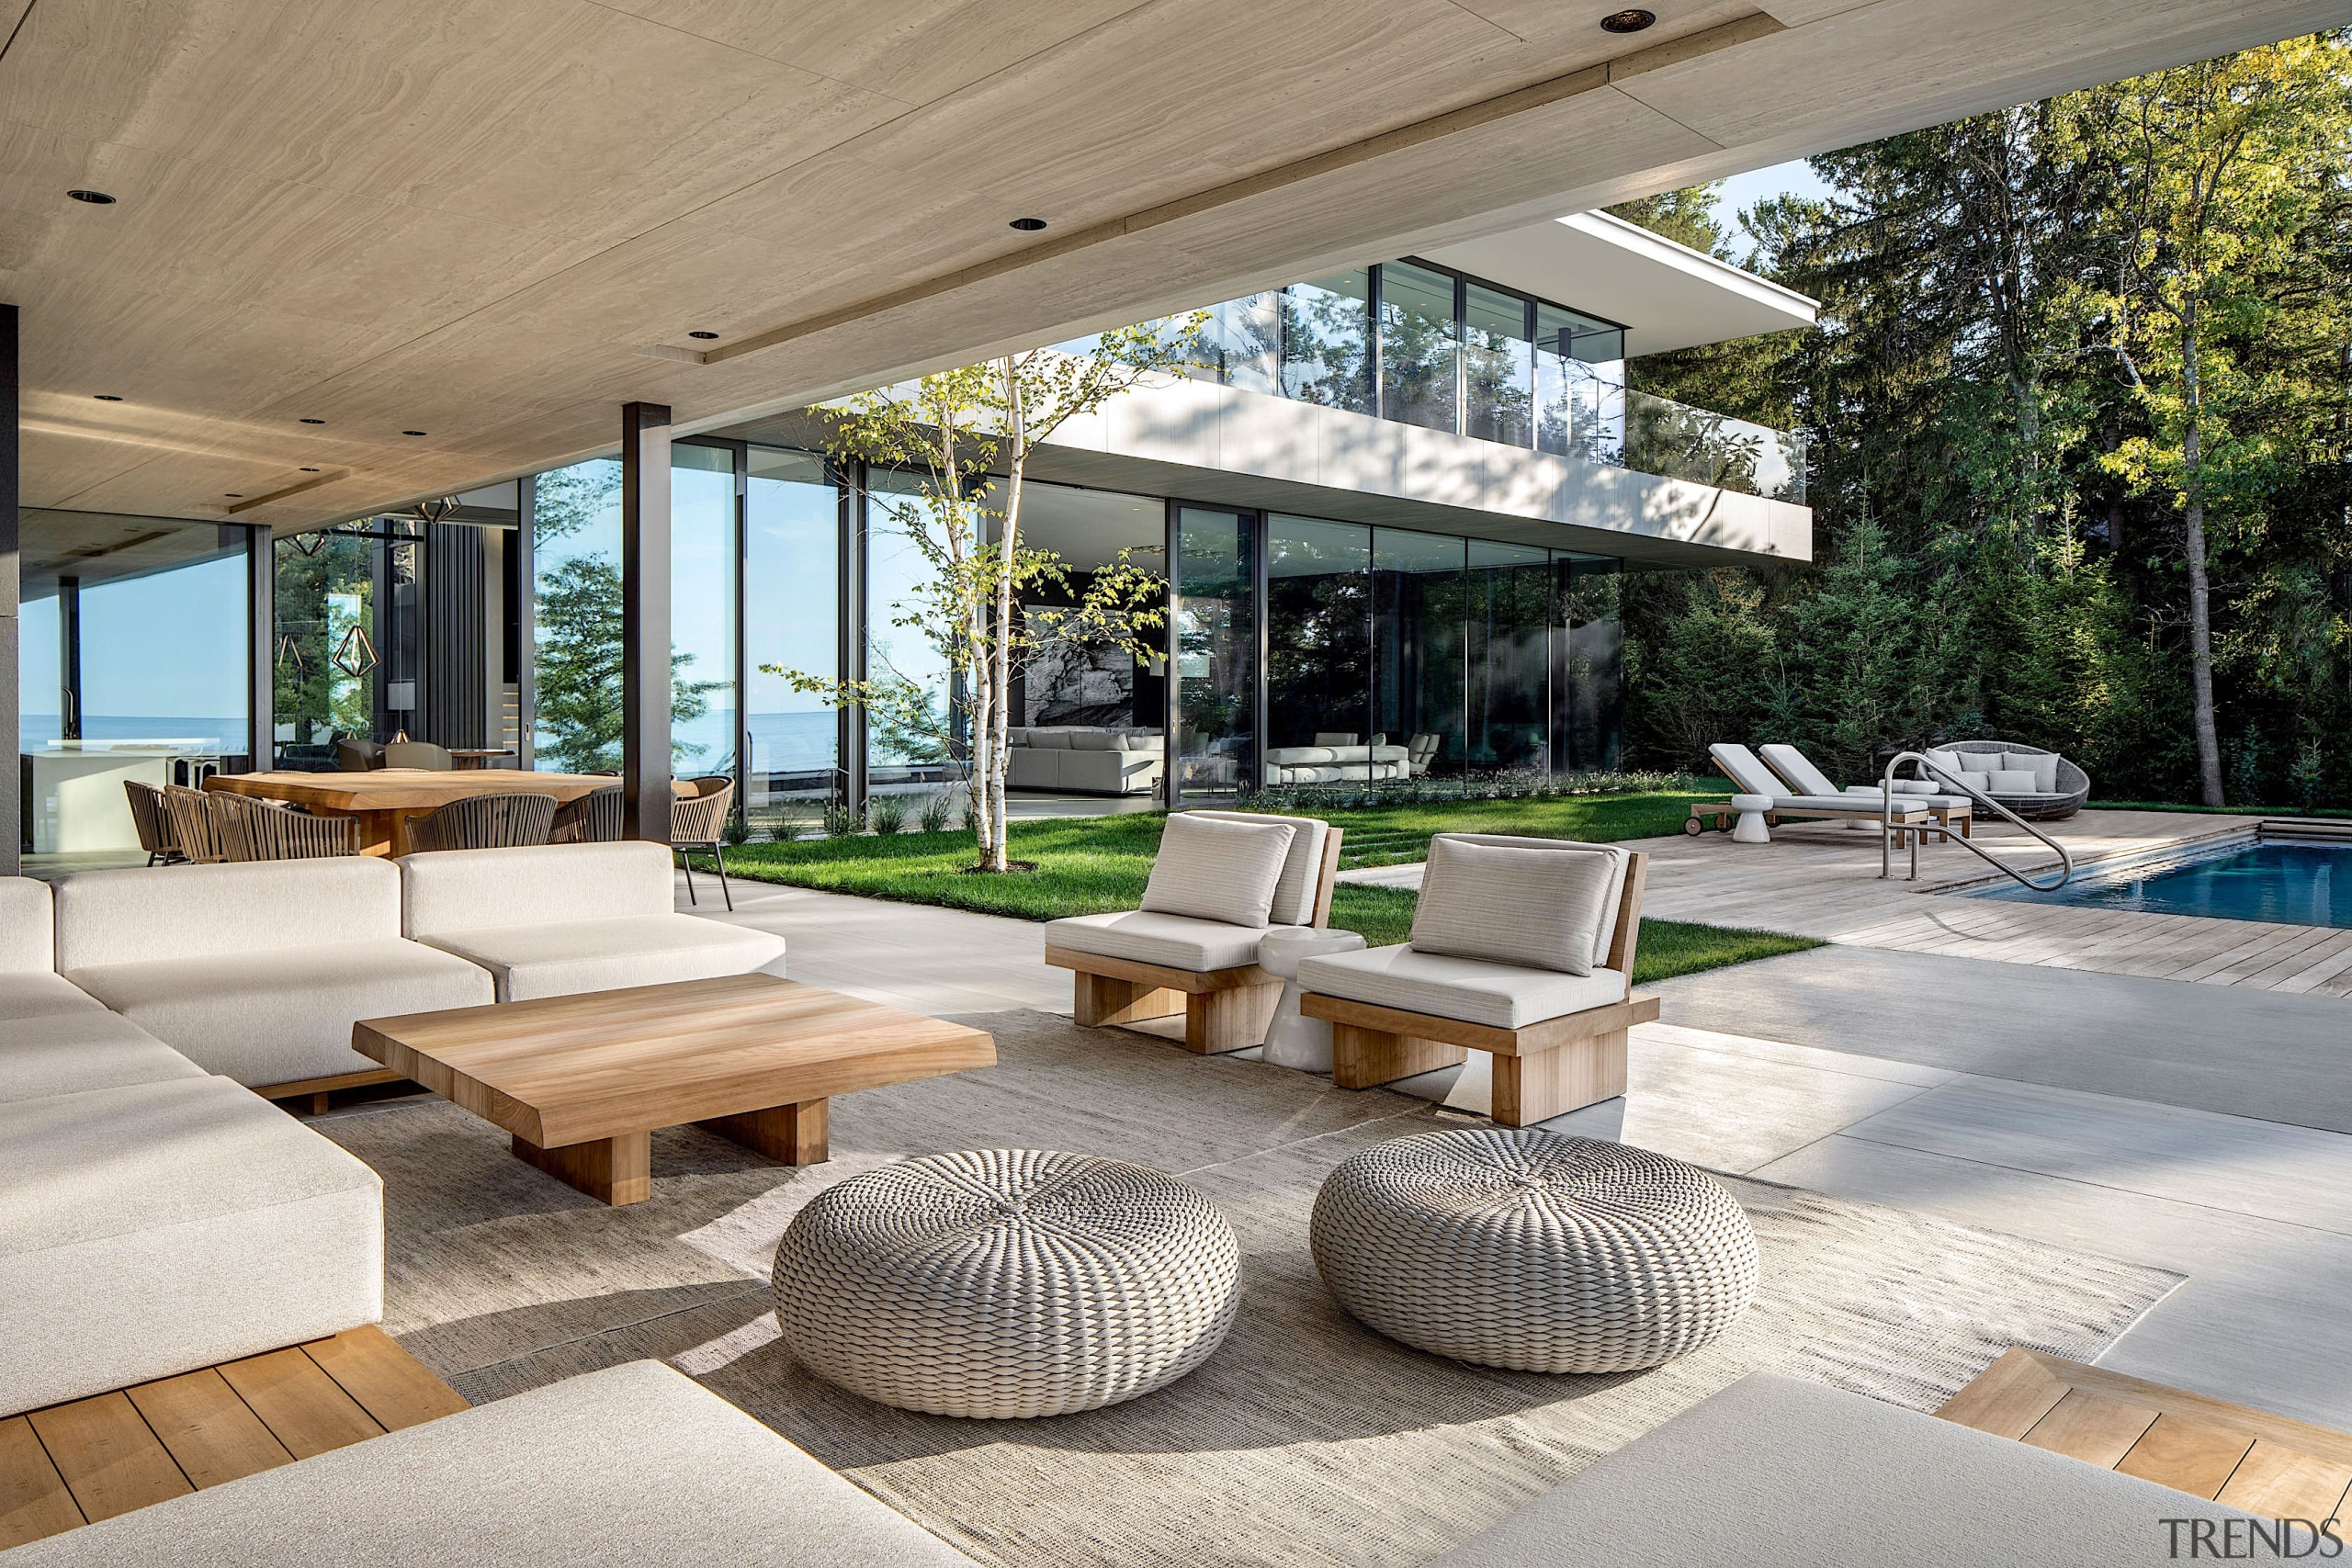 A covered outdoor entertainment area flanks a swimming